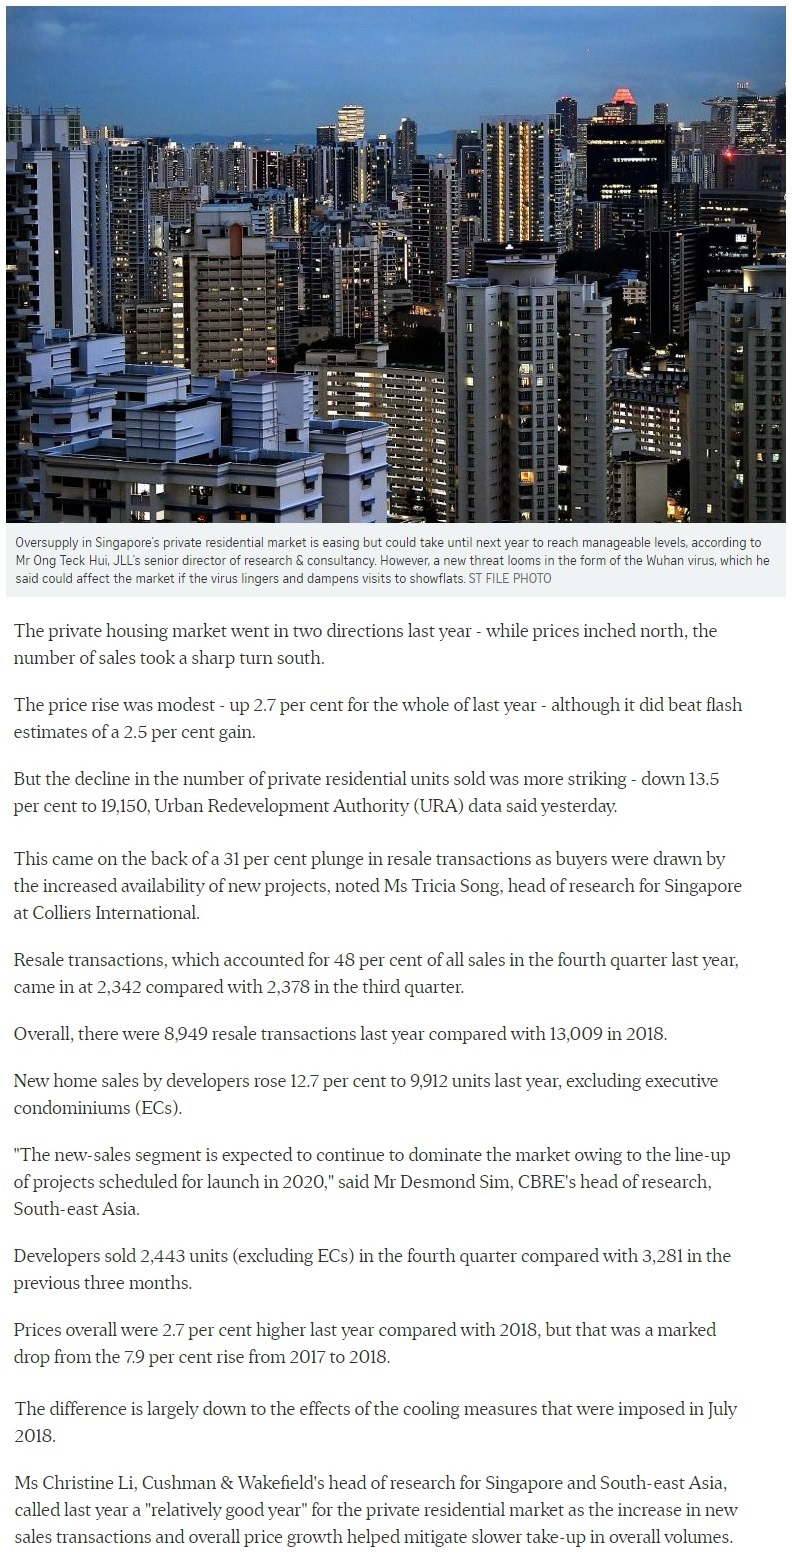 Penrose - Singapore private home prices inch up 2.7% for 2019 Part 1